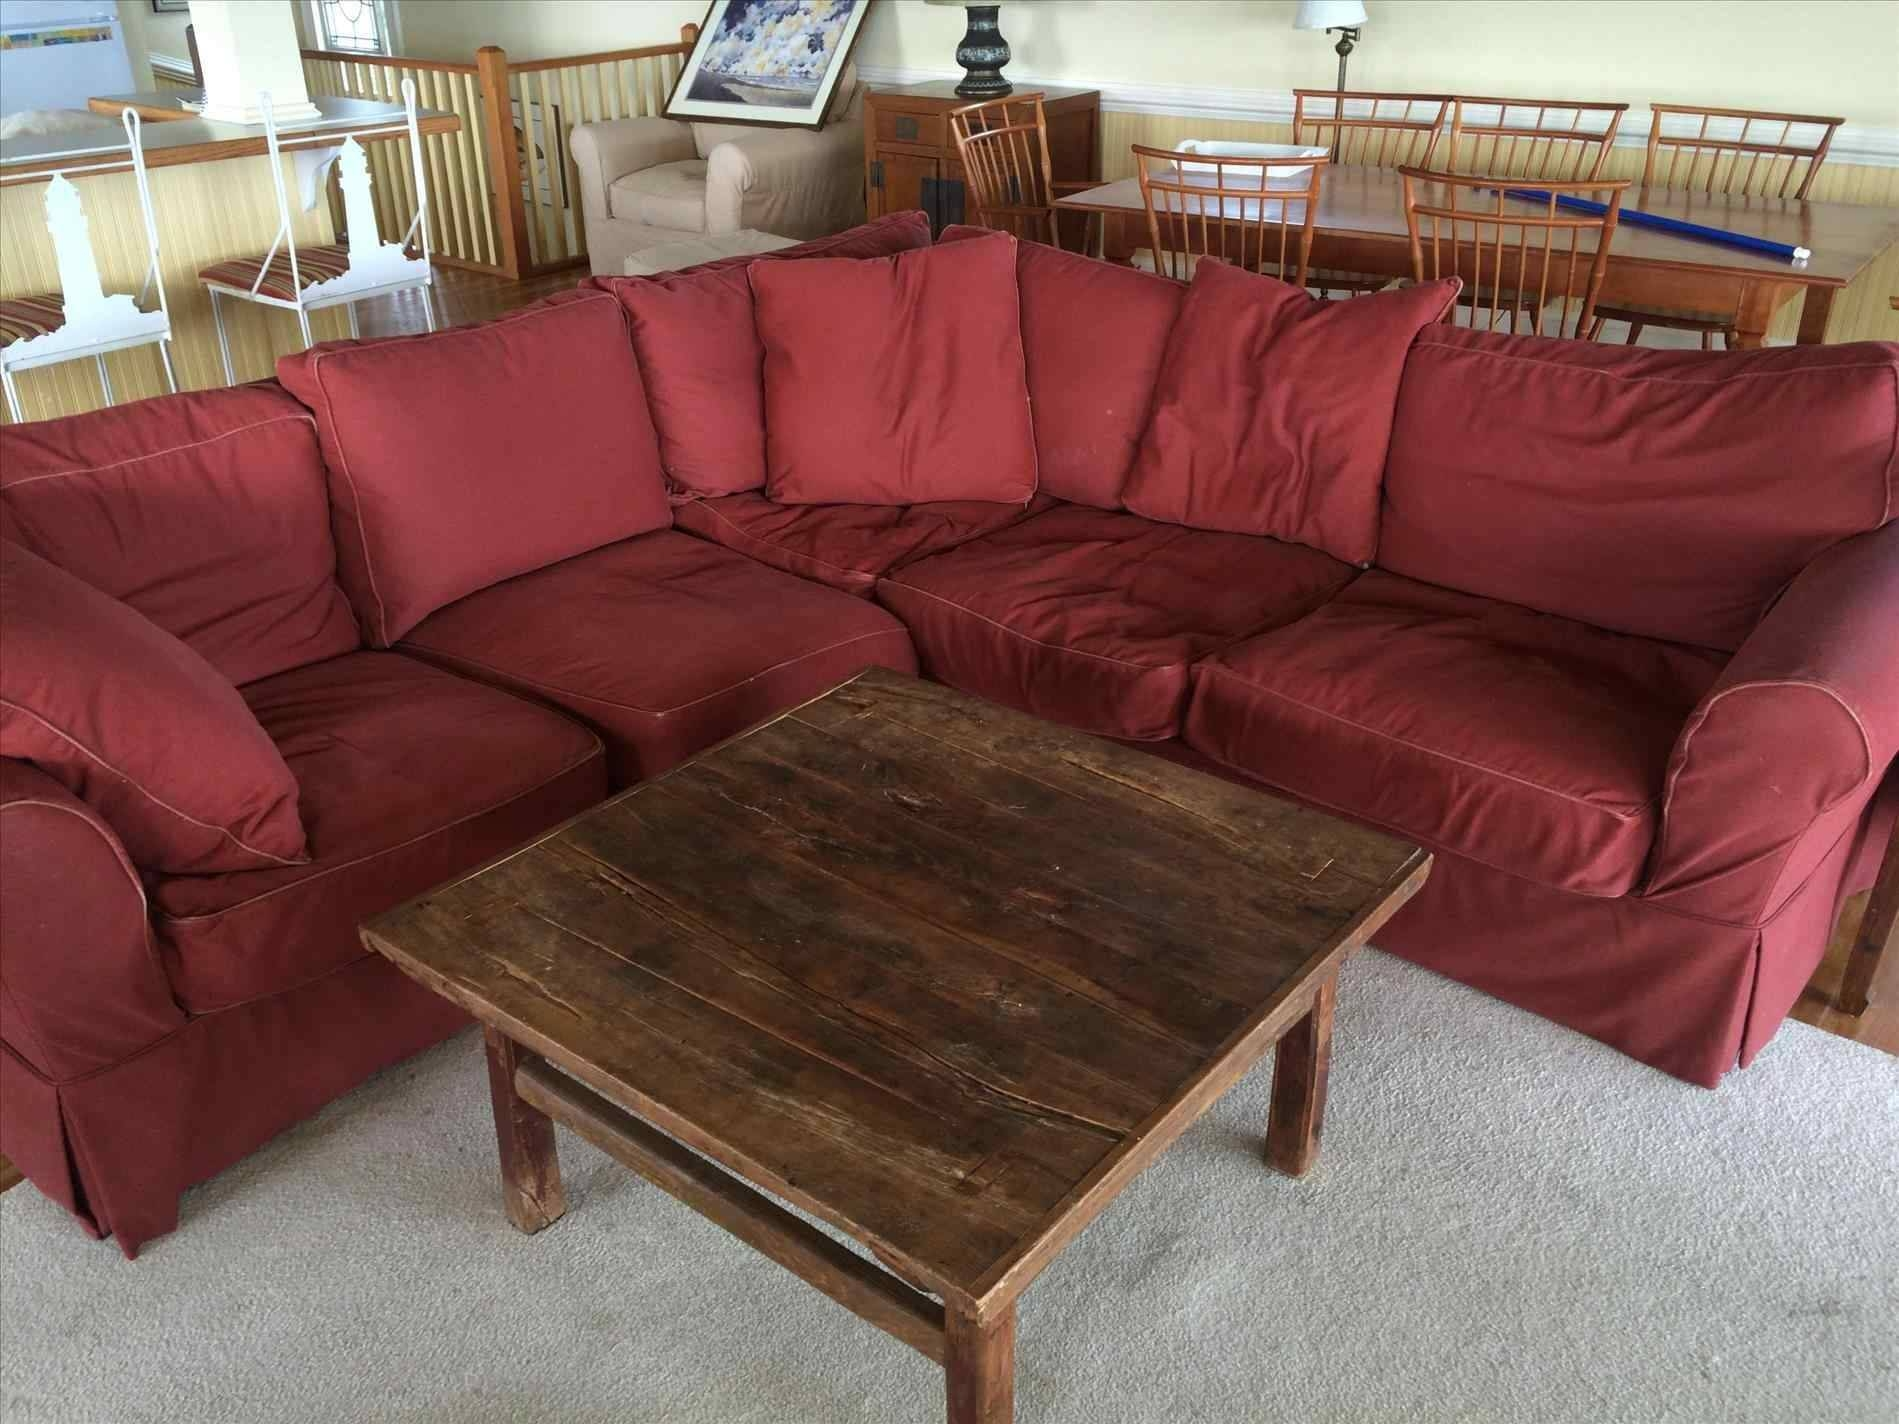 Michaels Furniture Portland - Home Design Ideas And Pictures pertaining to Down Filled Sofa Sectional (Image 13 of 25)